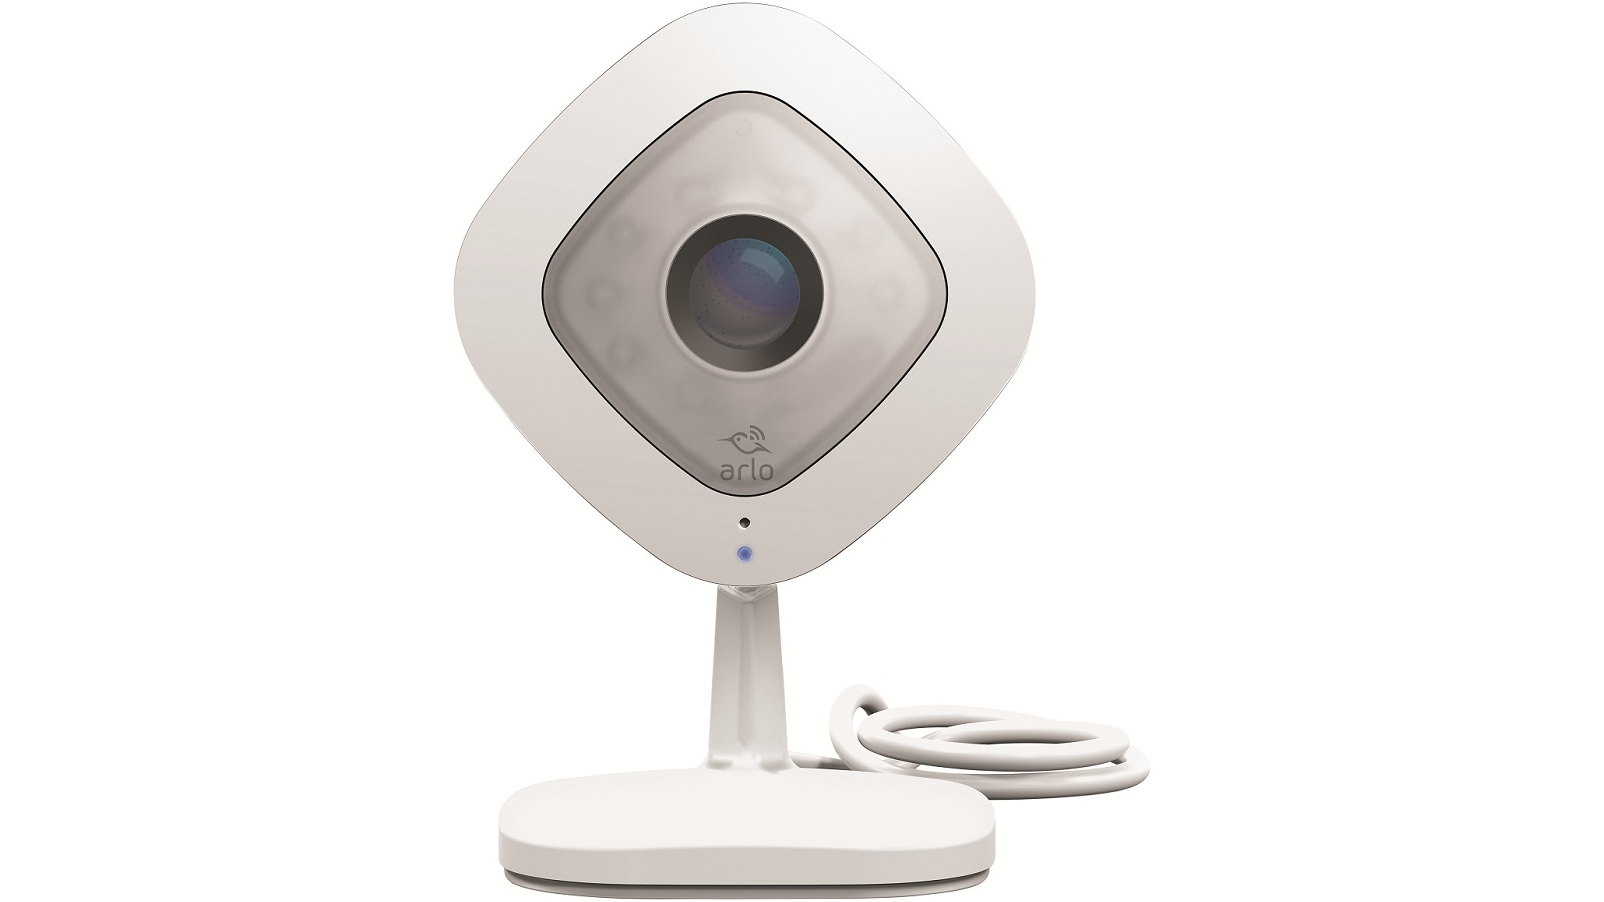 34bdcb6f317 Buy Netgear VMC3040 Arlo Q Security Camera